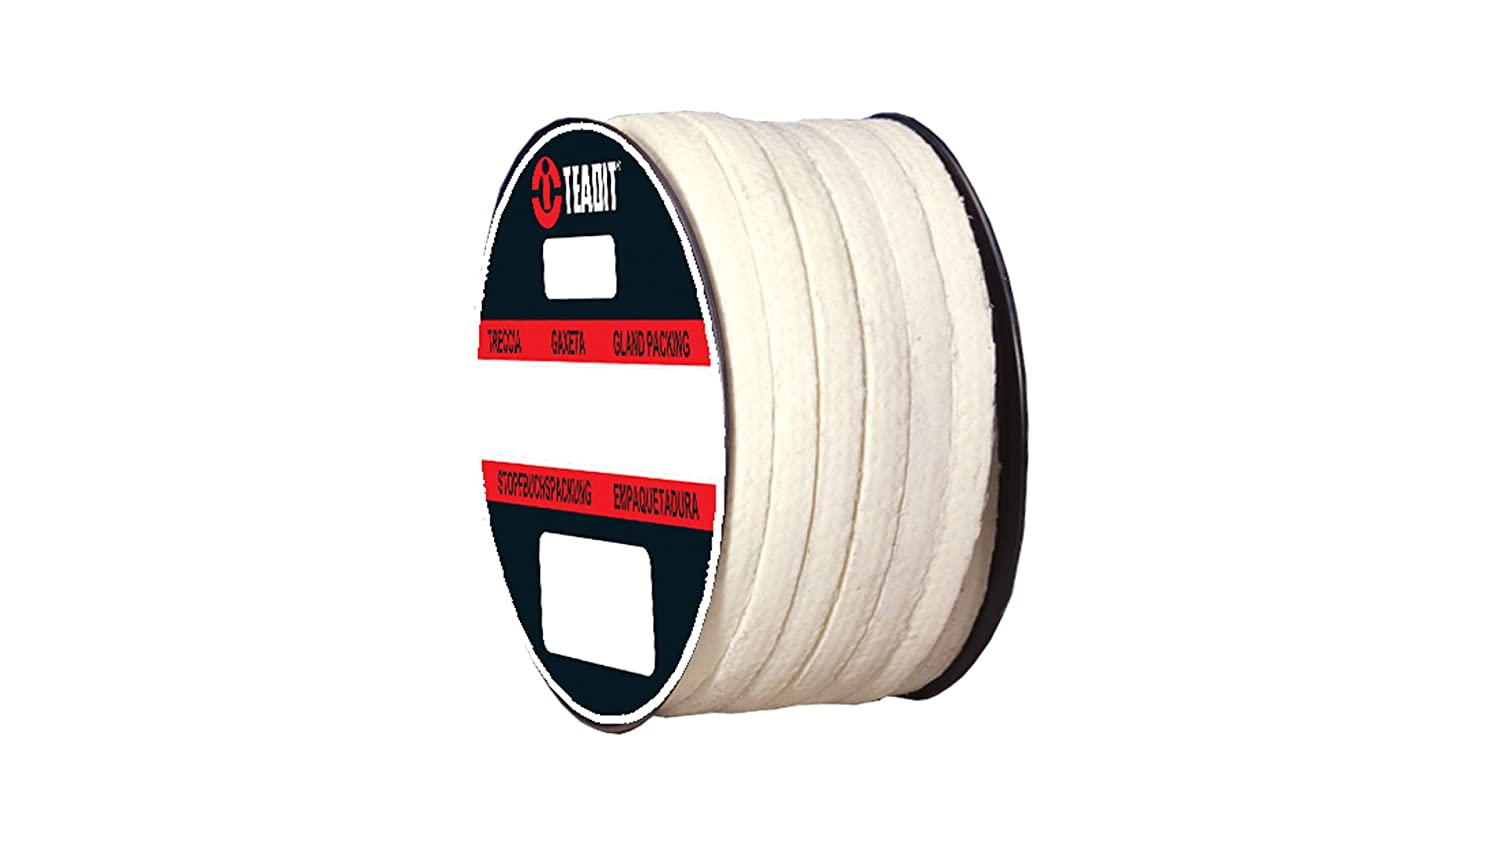 STCC Lubricated Spool 1//8 CS x 25 lb 1//8 CS x 25 lb Sterling Seal and Supply 2019.125X25 Teadit Style 2019 Synthetic Yarn with PTFE Spool